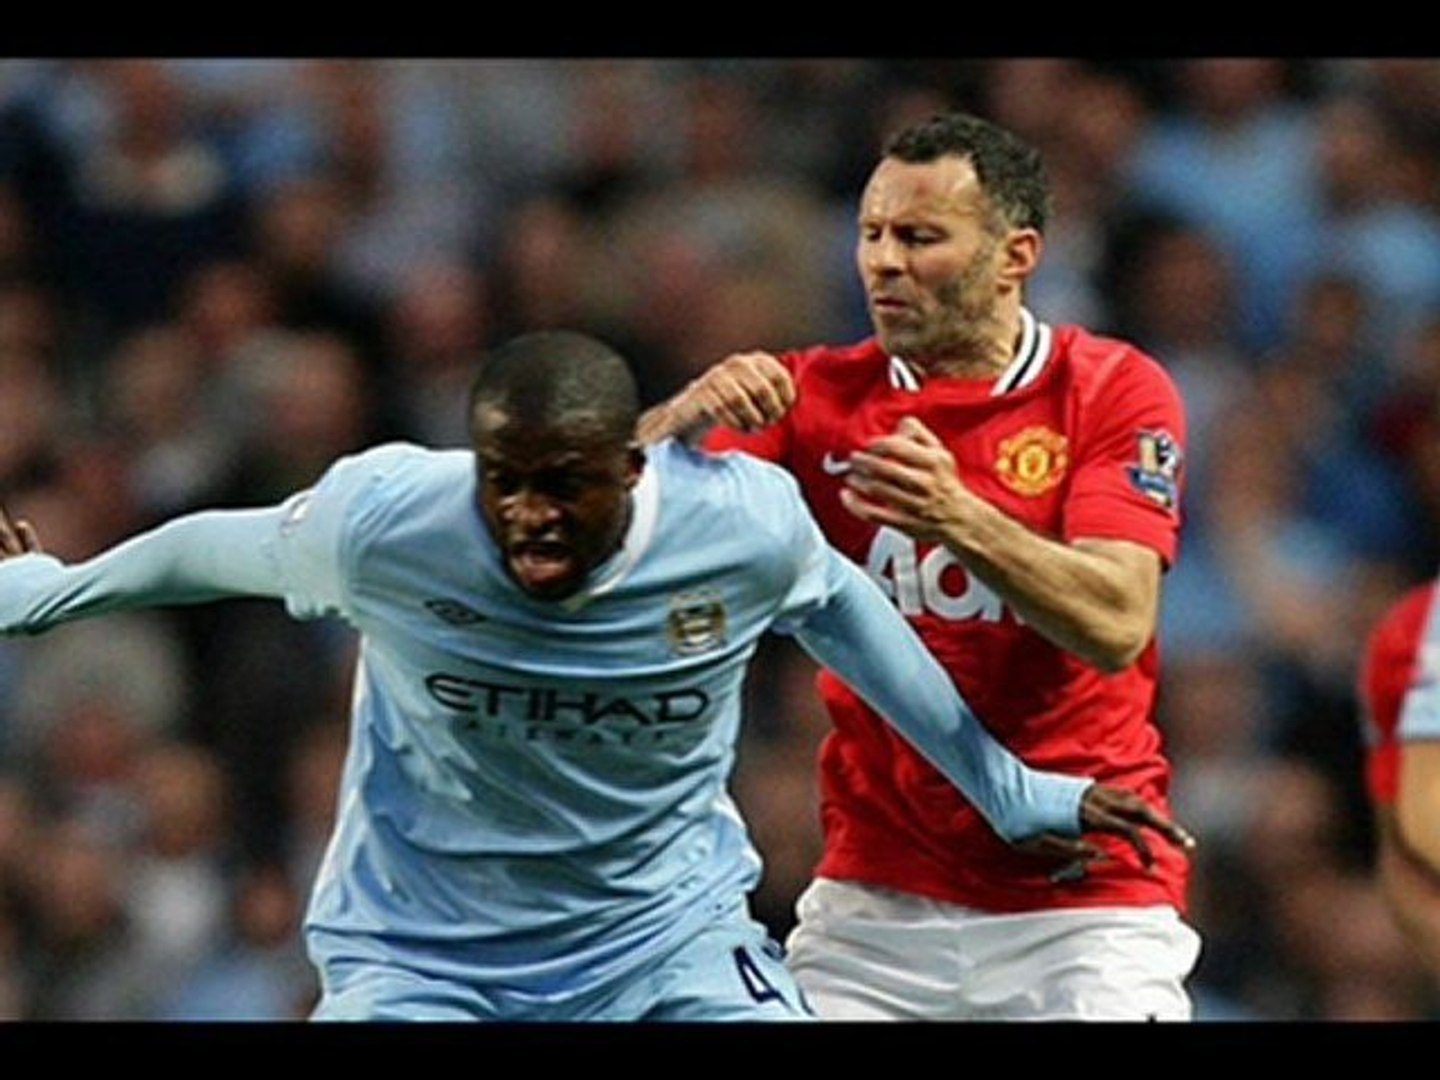 Manchester City vs. Manchester United Live Stream Online 09-12-2012